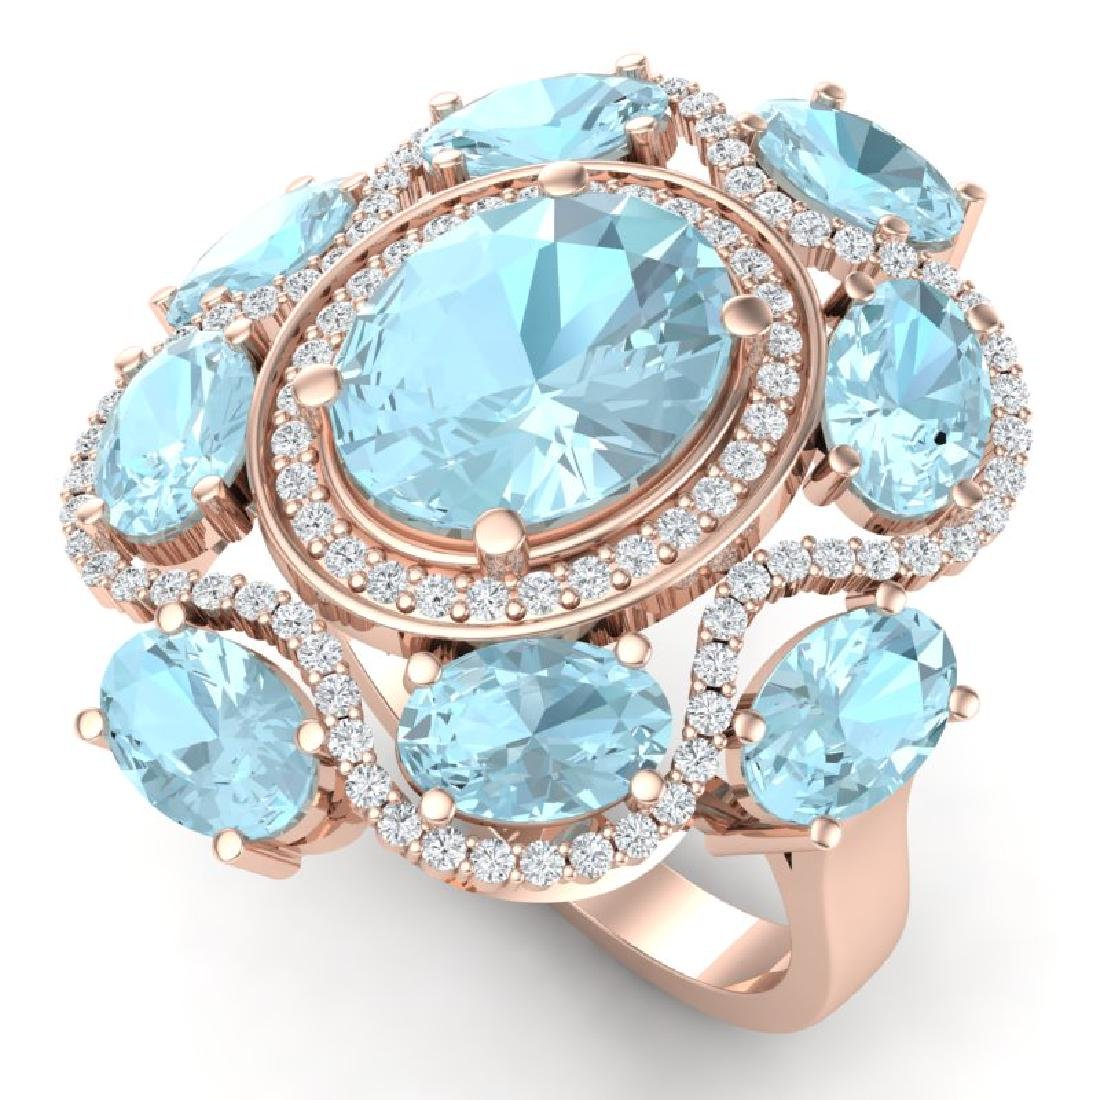 9.26 CTW Royalty Sky Topaz & VS Diamond Ring 18K Rose